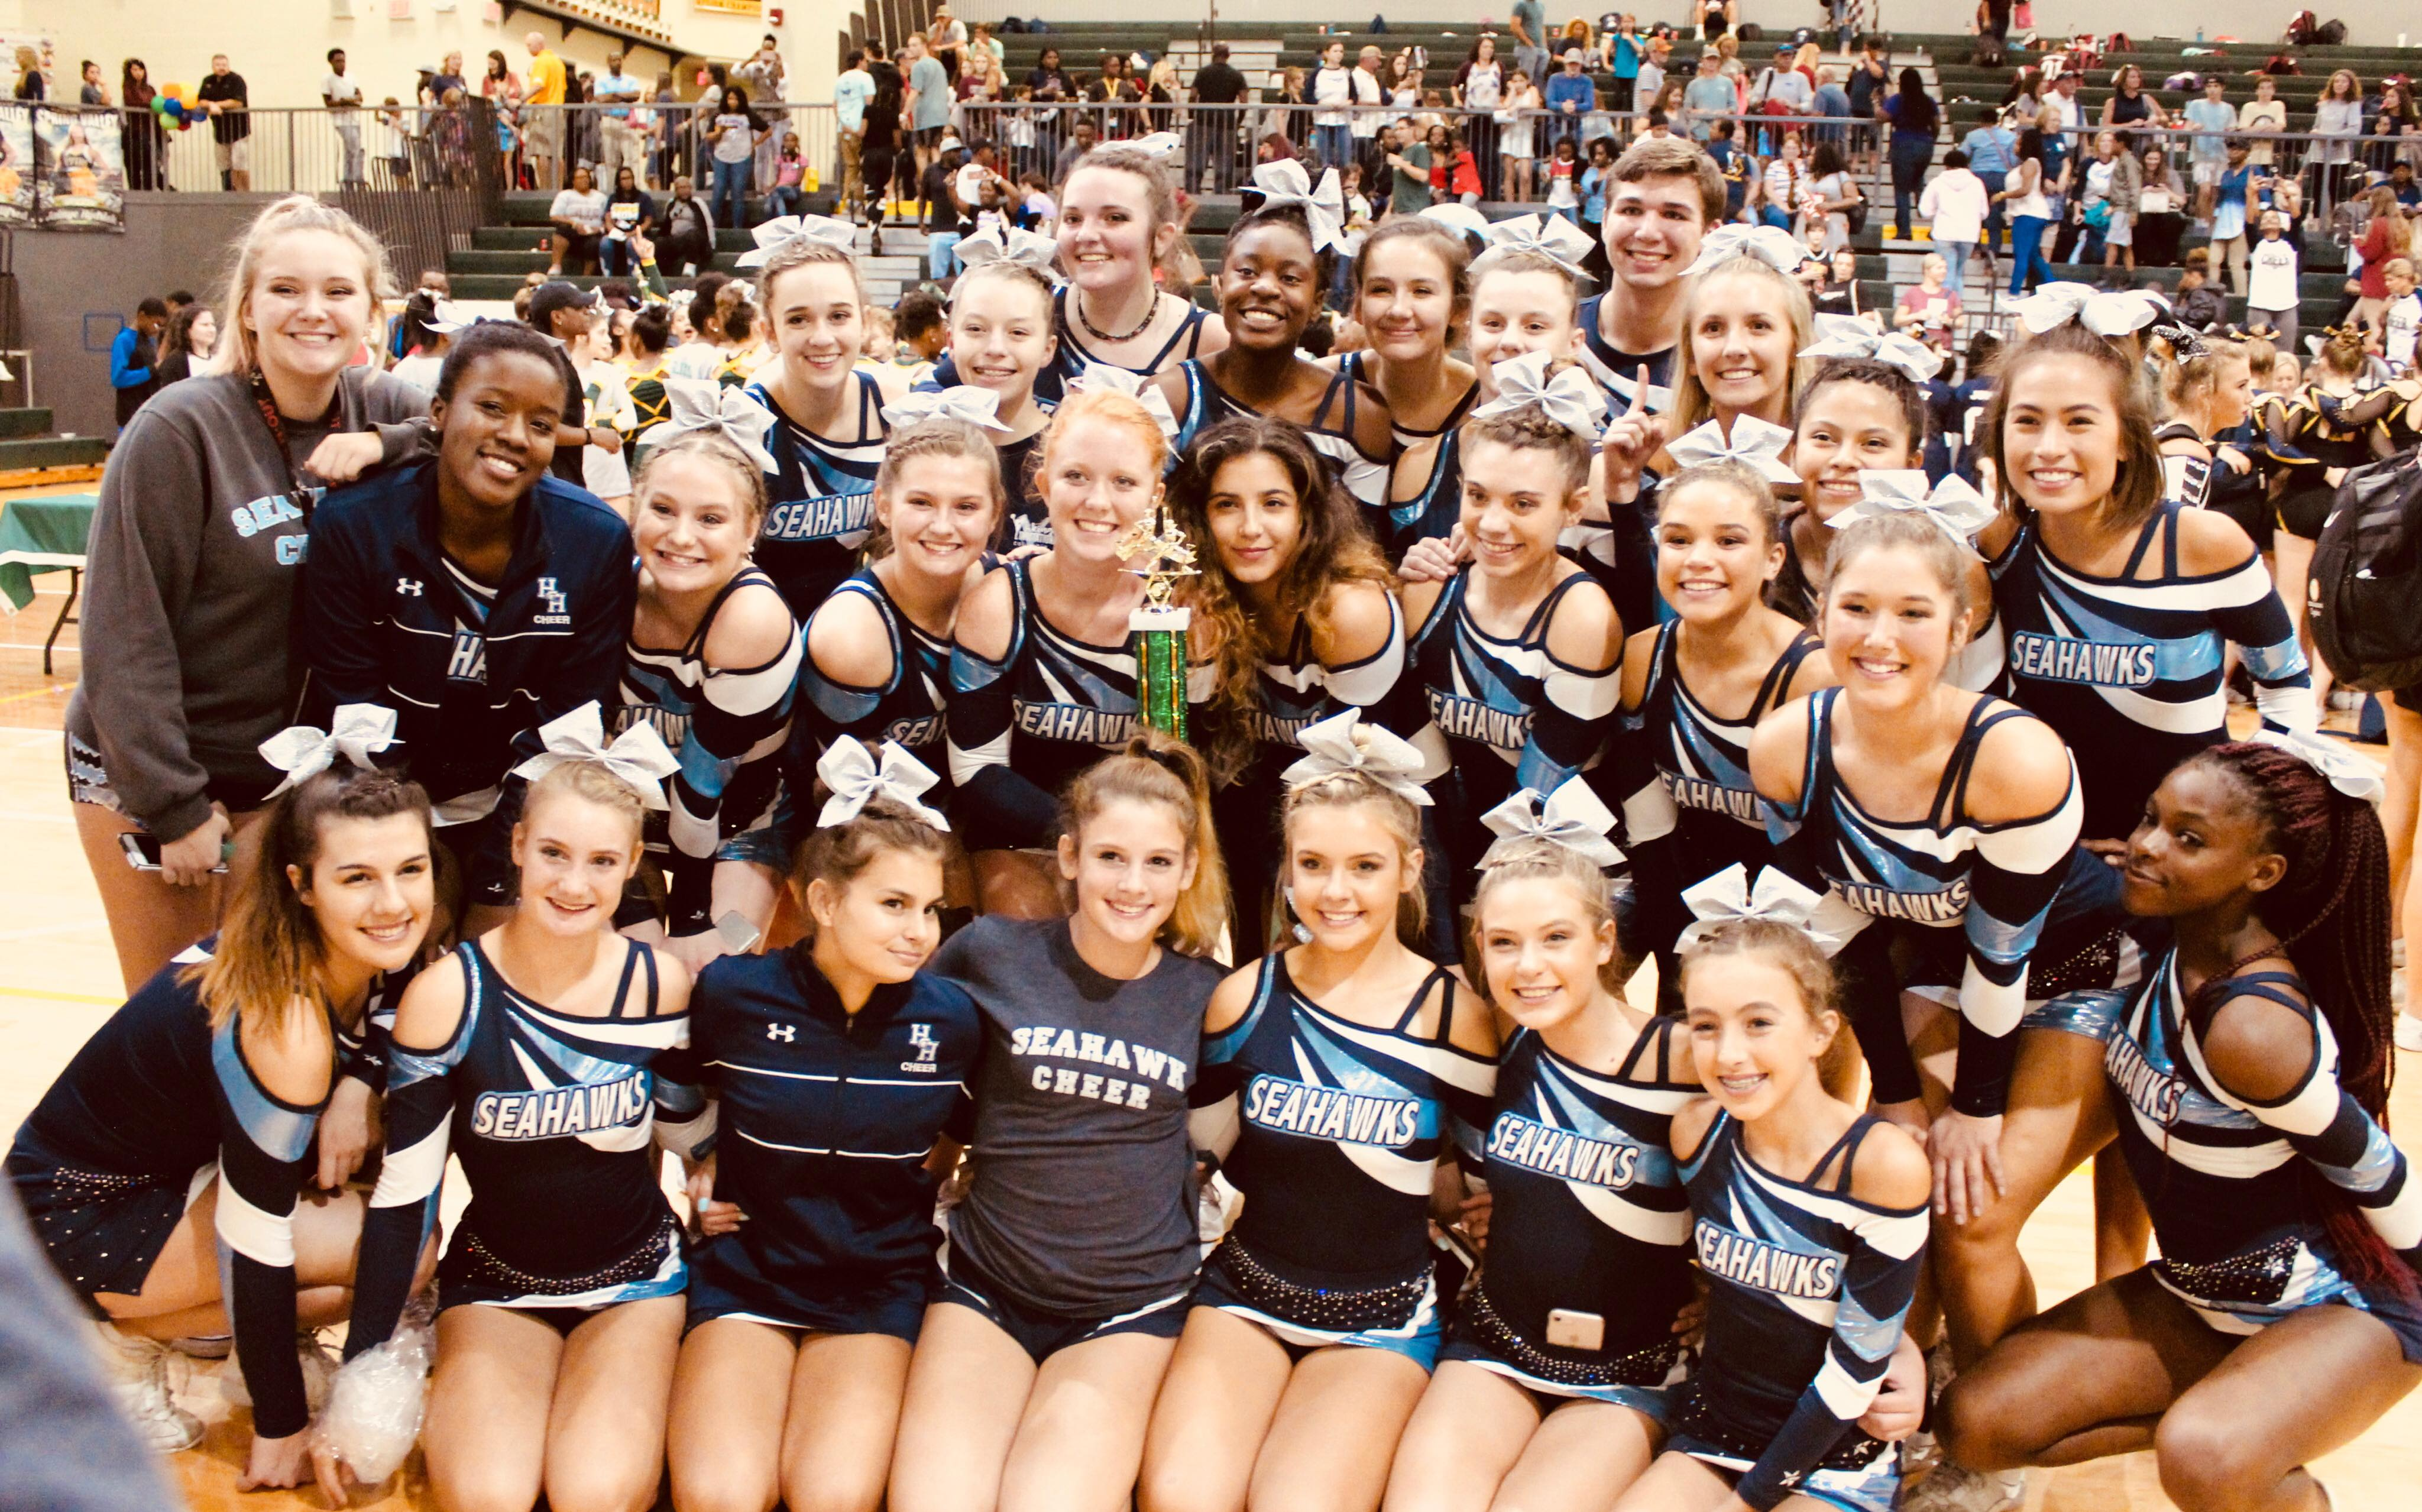 Cheer wins 1st place @ Spring Valley Invitational